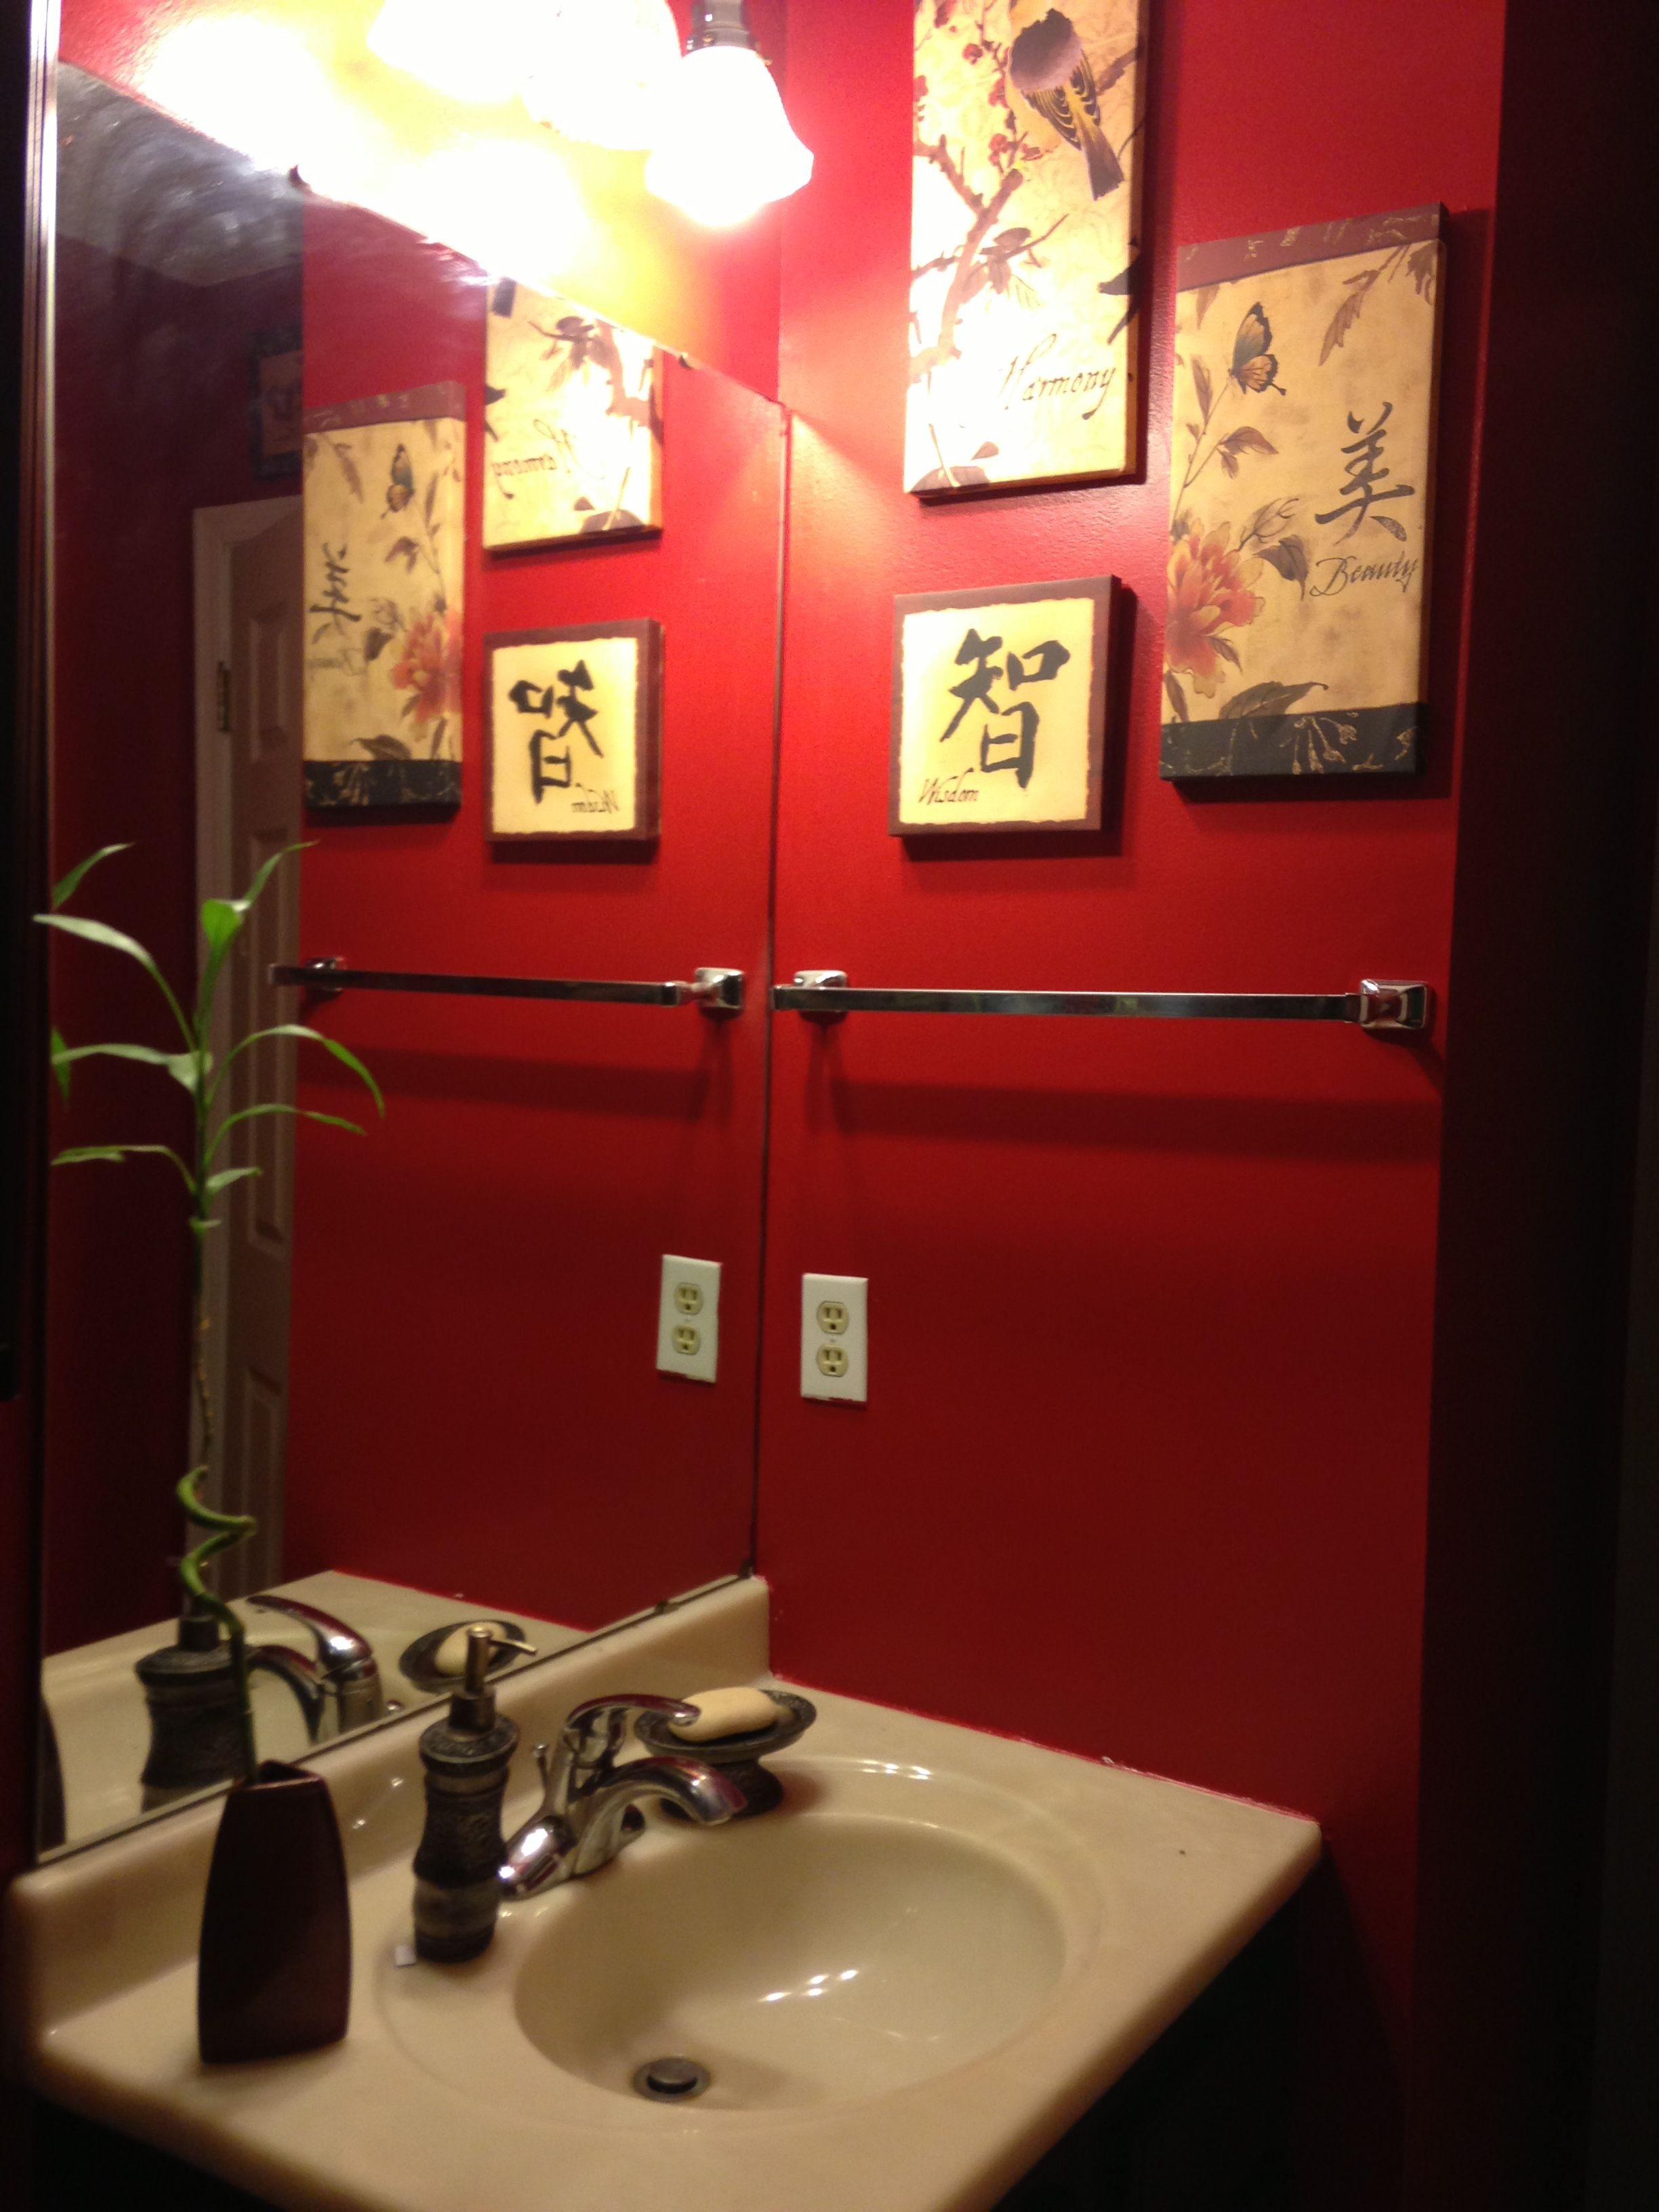 Chinese Bathroom Decor Canvas Pictures Found At Family Dollar For $15My Chinese